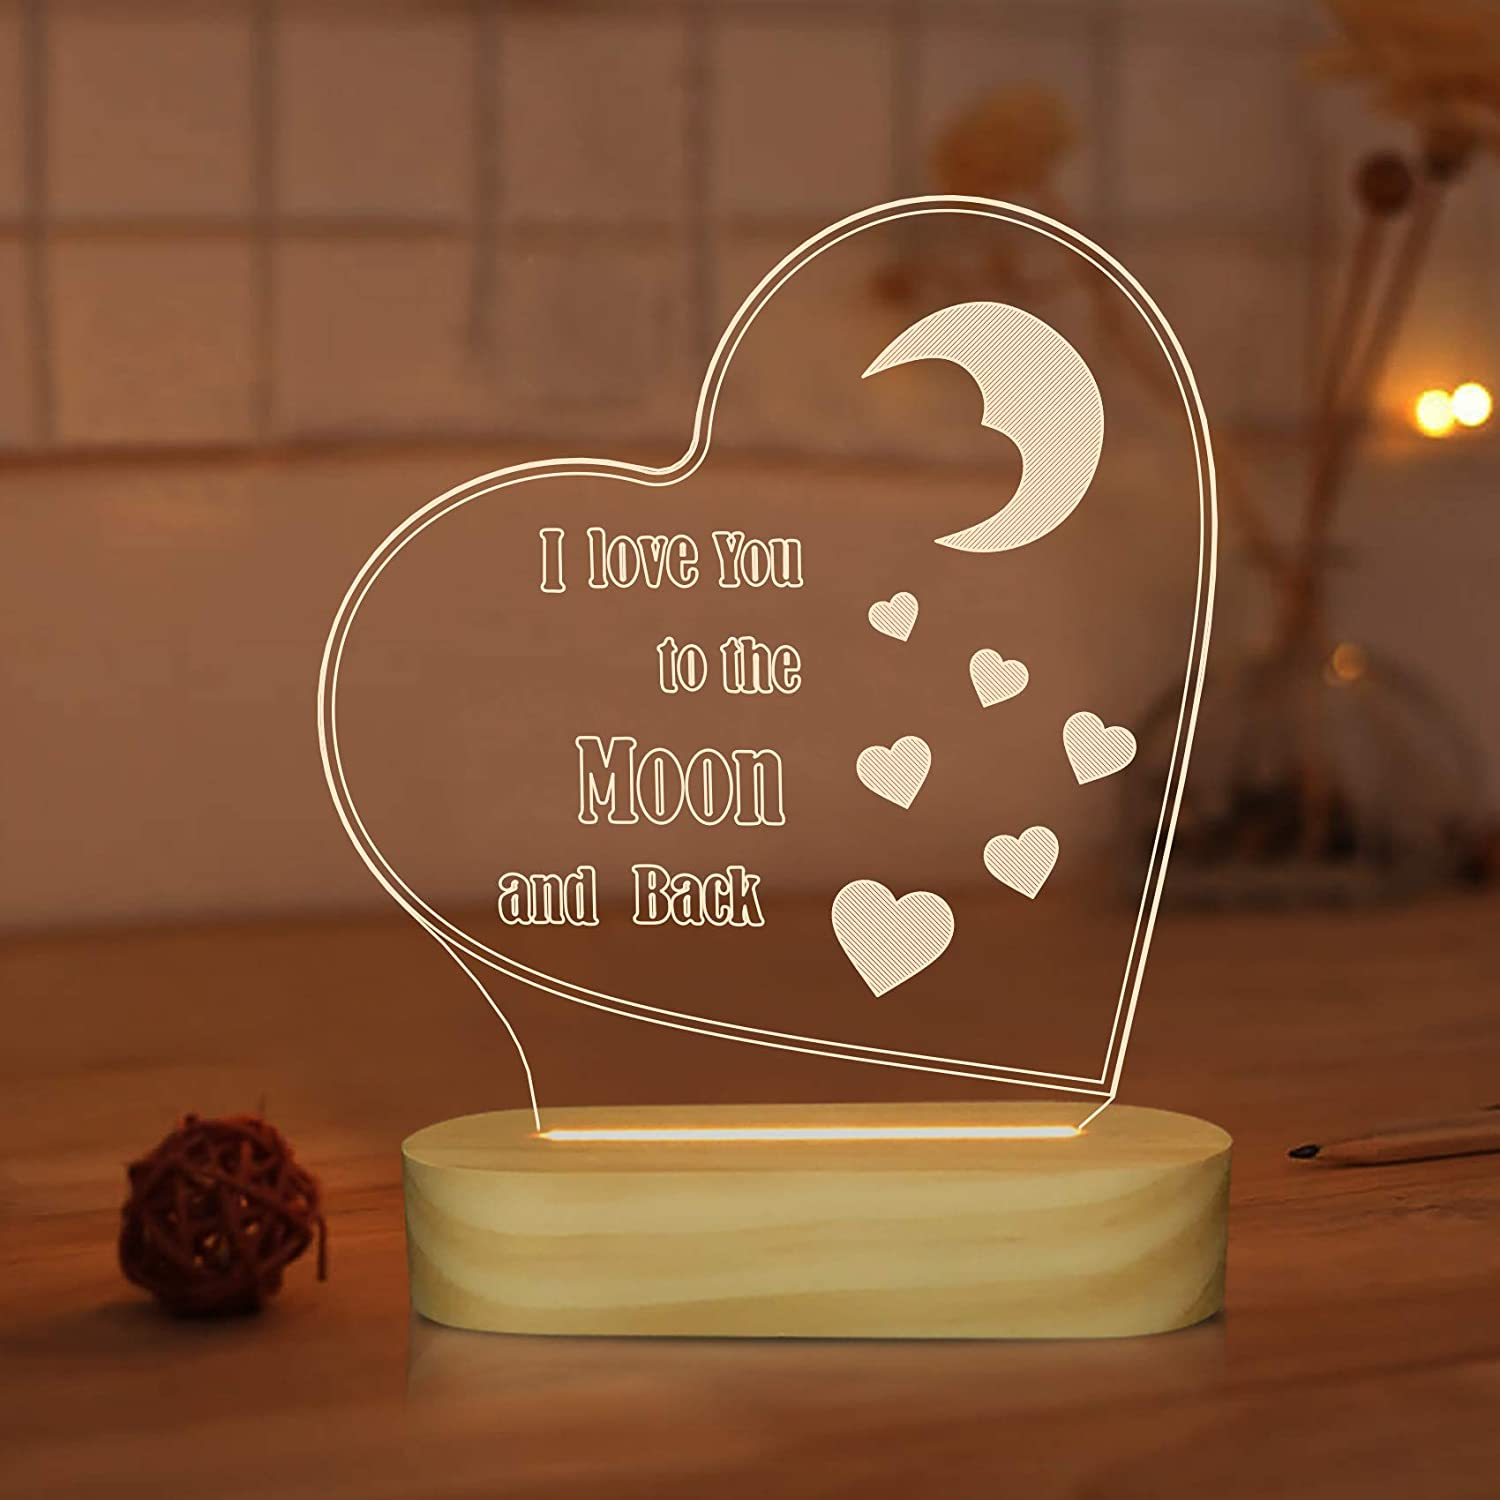 3D Illusion Night Light I Love You to The Moon and Back Table Lamp for Girl Romantic Holiday Gifts Ideas